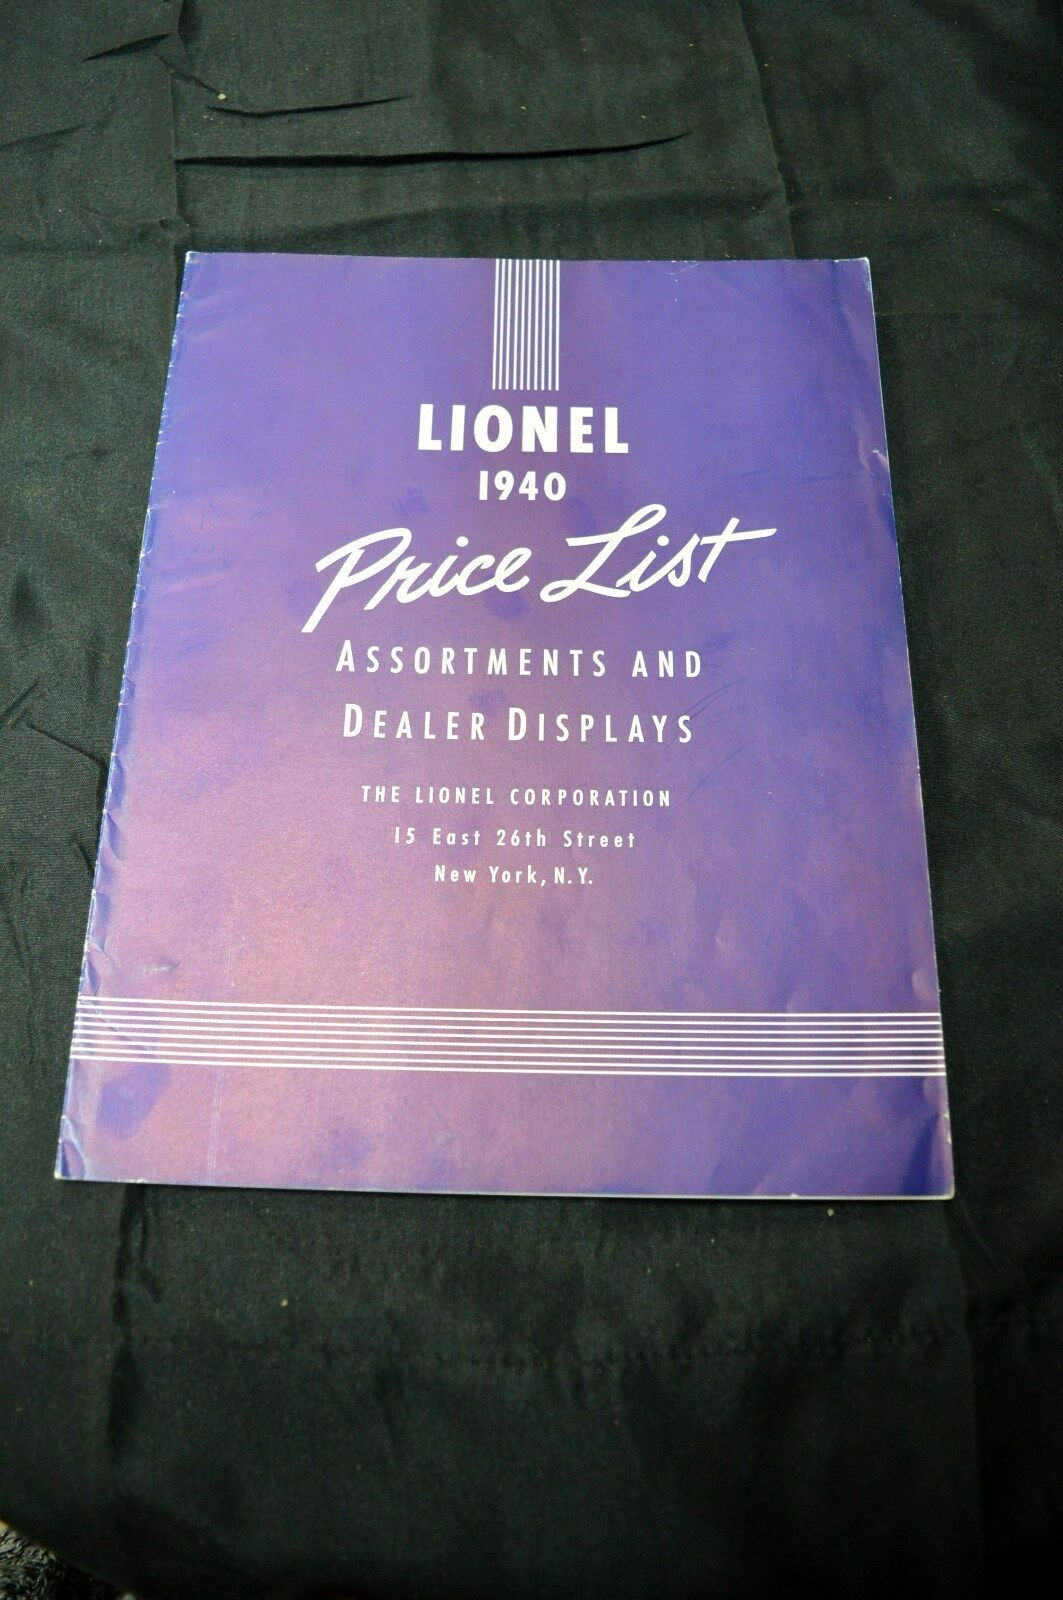 Lionel 1940 Price List - Assortments and Dealer Displays - Excellent Condition